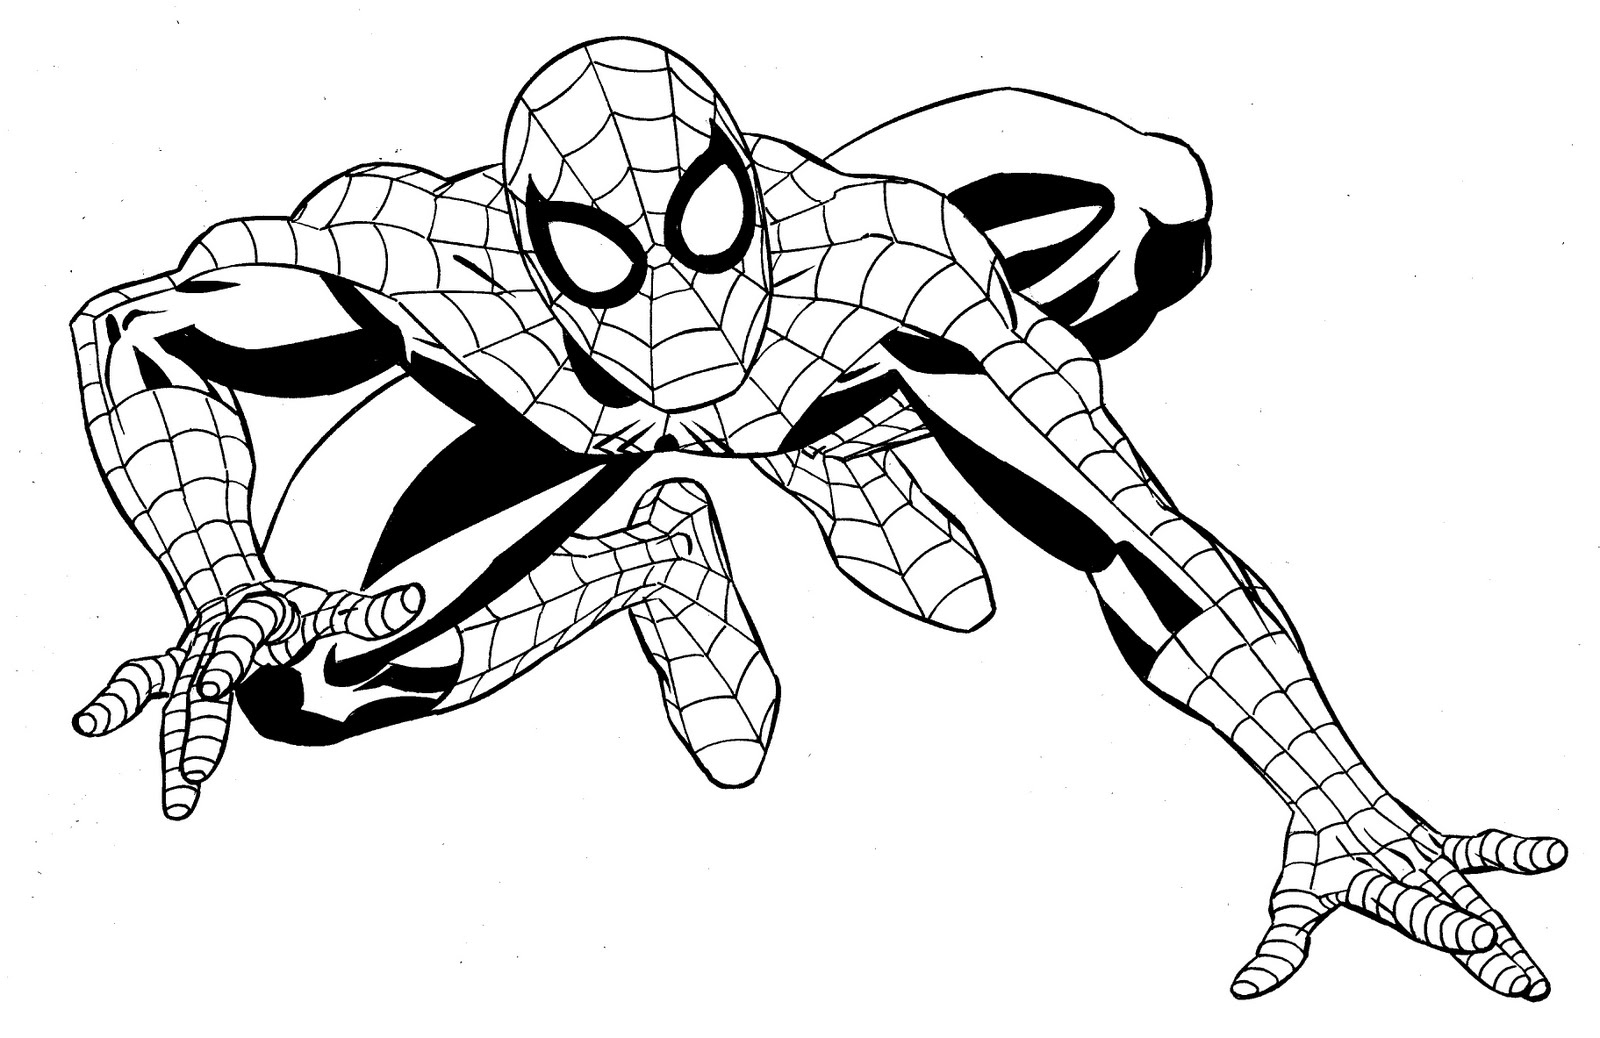 coloring pages for kids super heros superheroes printable coloring pages coloring heros super pages kids for